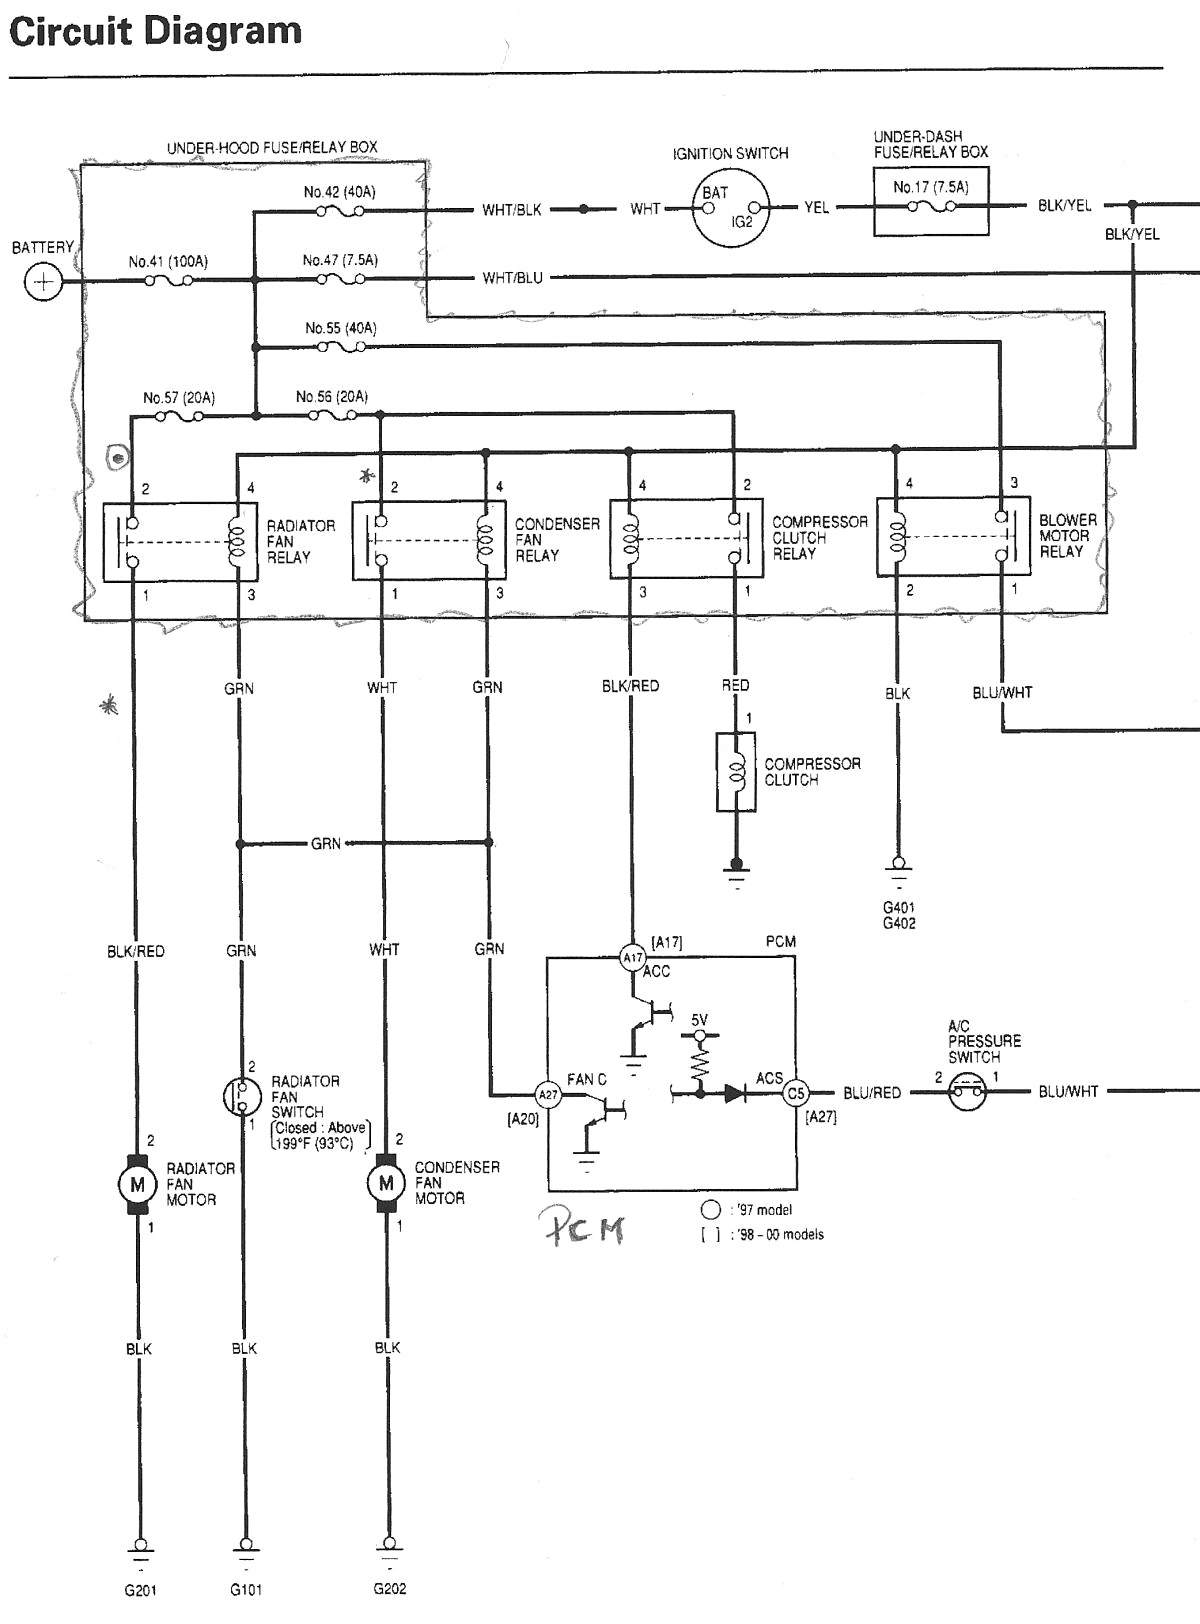 1997 Honda Accord Engine Diagram 2003 Honda Accord Stereo Wiring Diagram  and Adorable Blurts Of 1997